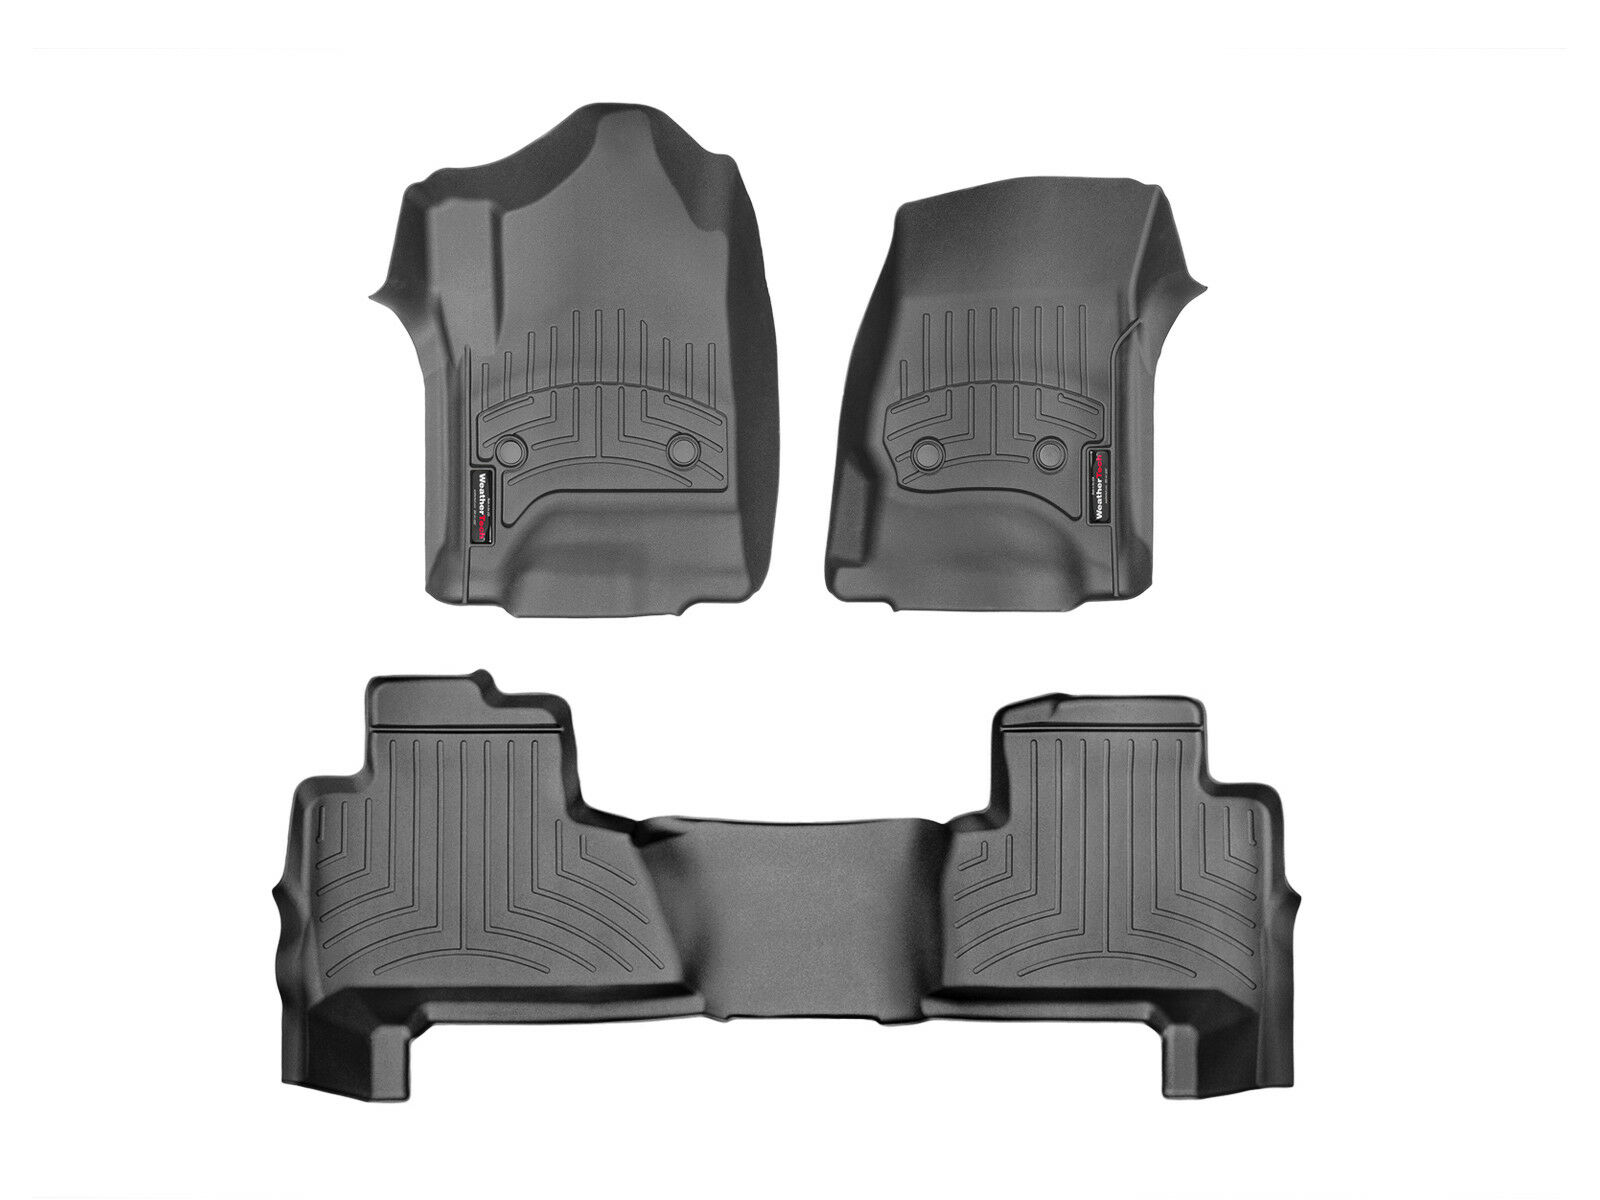 Weathertech Floorliner Floor Mats For Chevy Tahoe Gmc